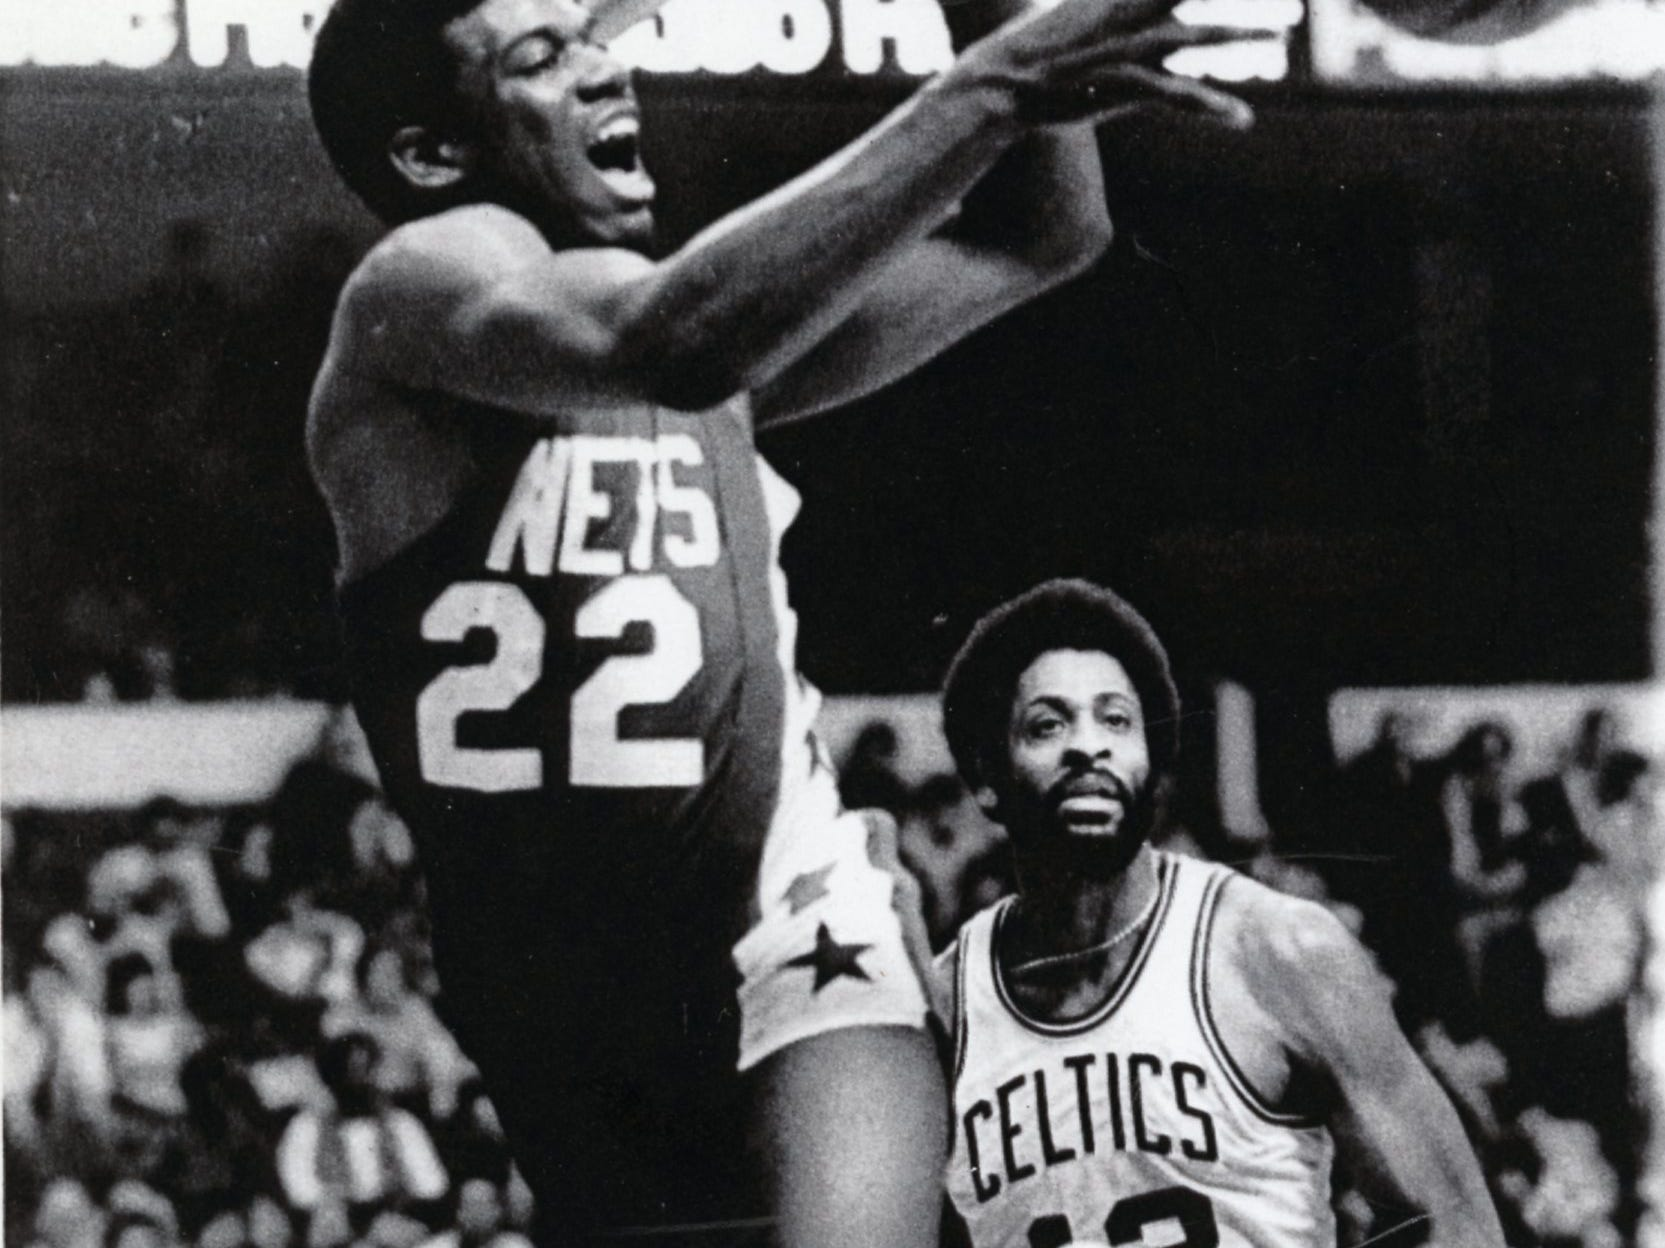 New Jersey Nets' Bernard King, left, against Don Chaney of the Celtics, January, 1979.